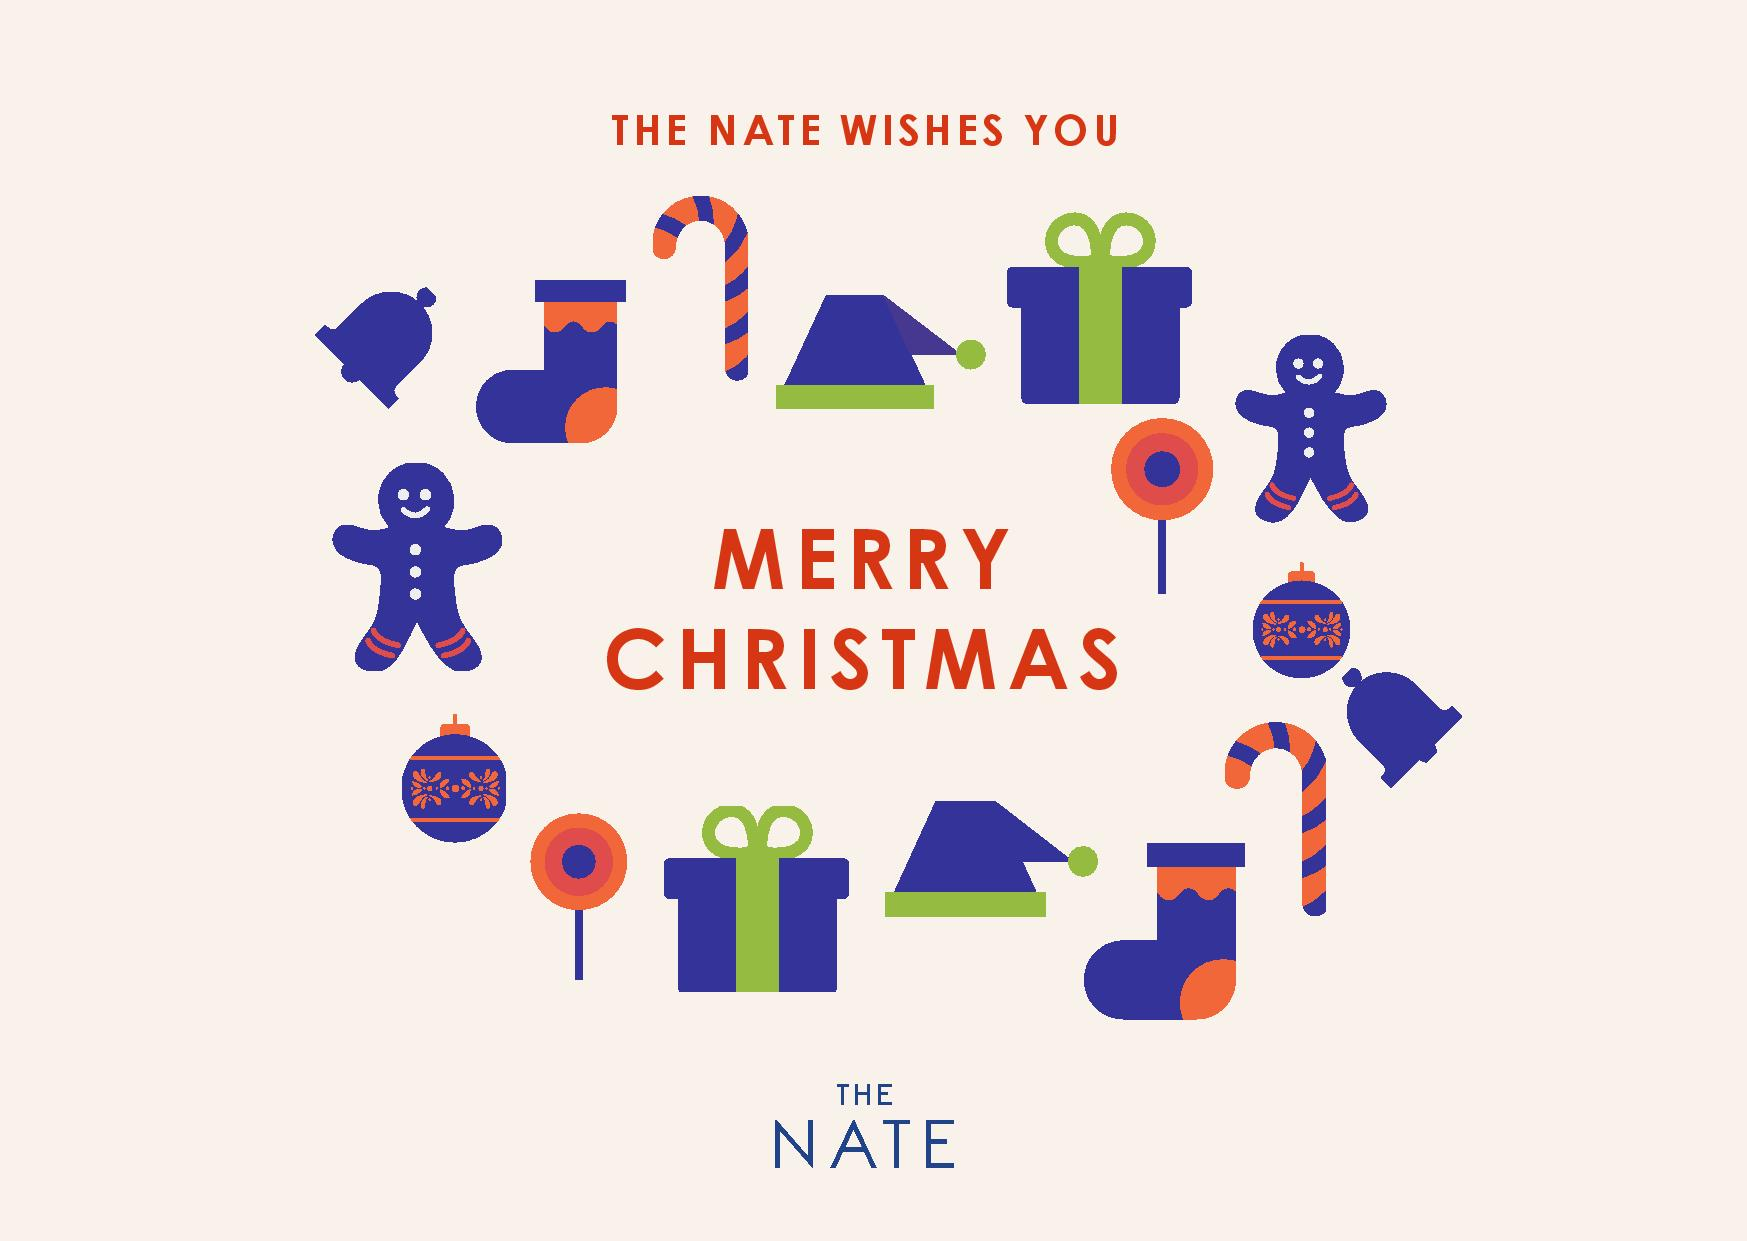 The Nate wishes you a merry christmas